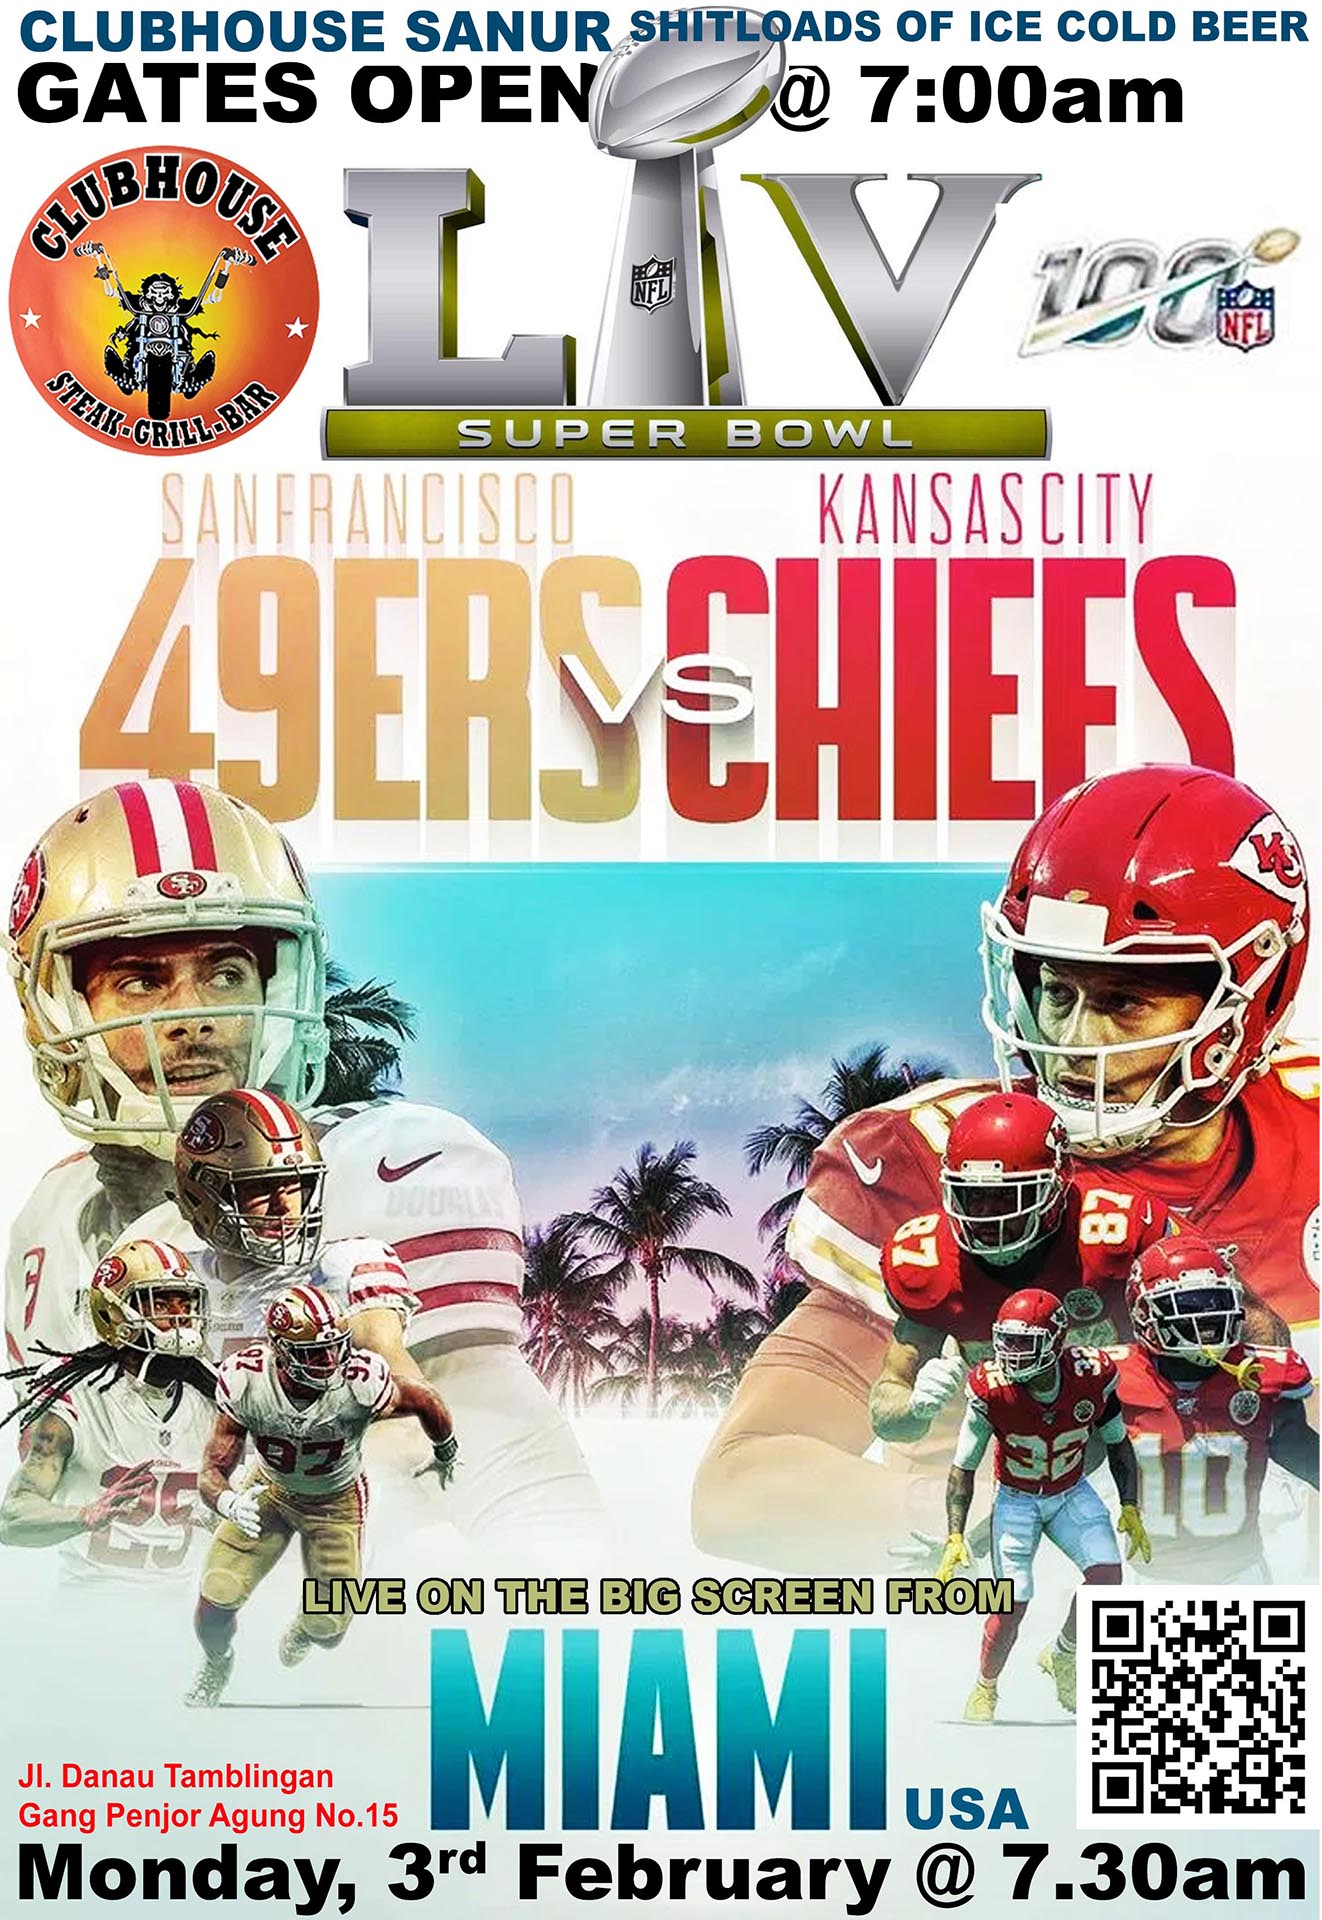 Super Bowl LIV Clubhouse Sanur Feb 2020 49ers vs Chiefs